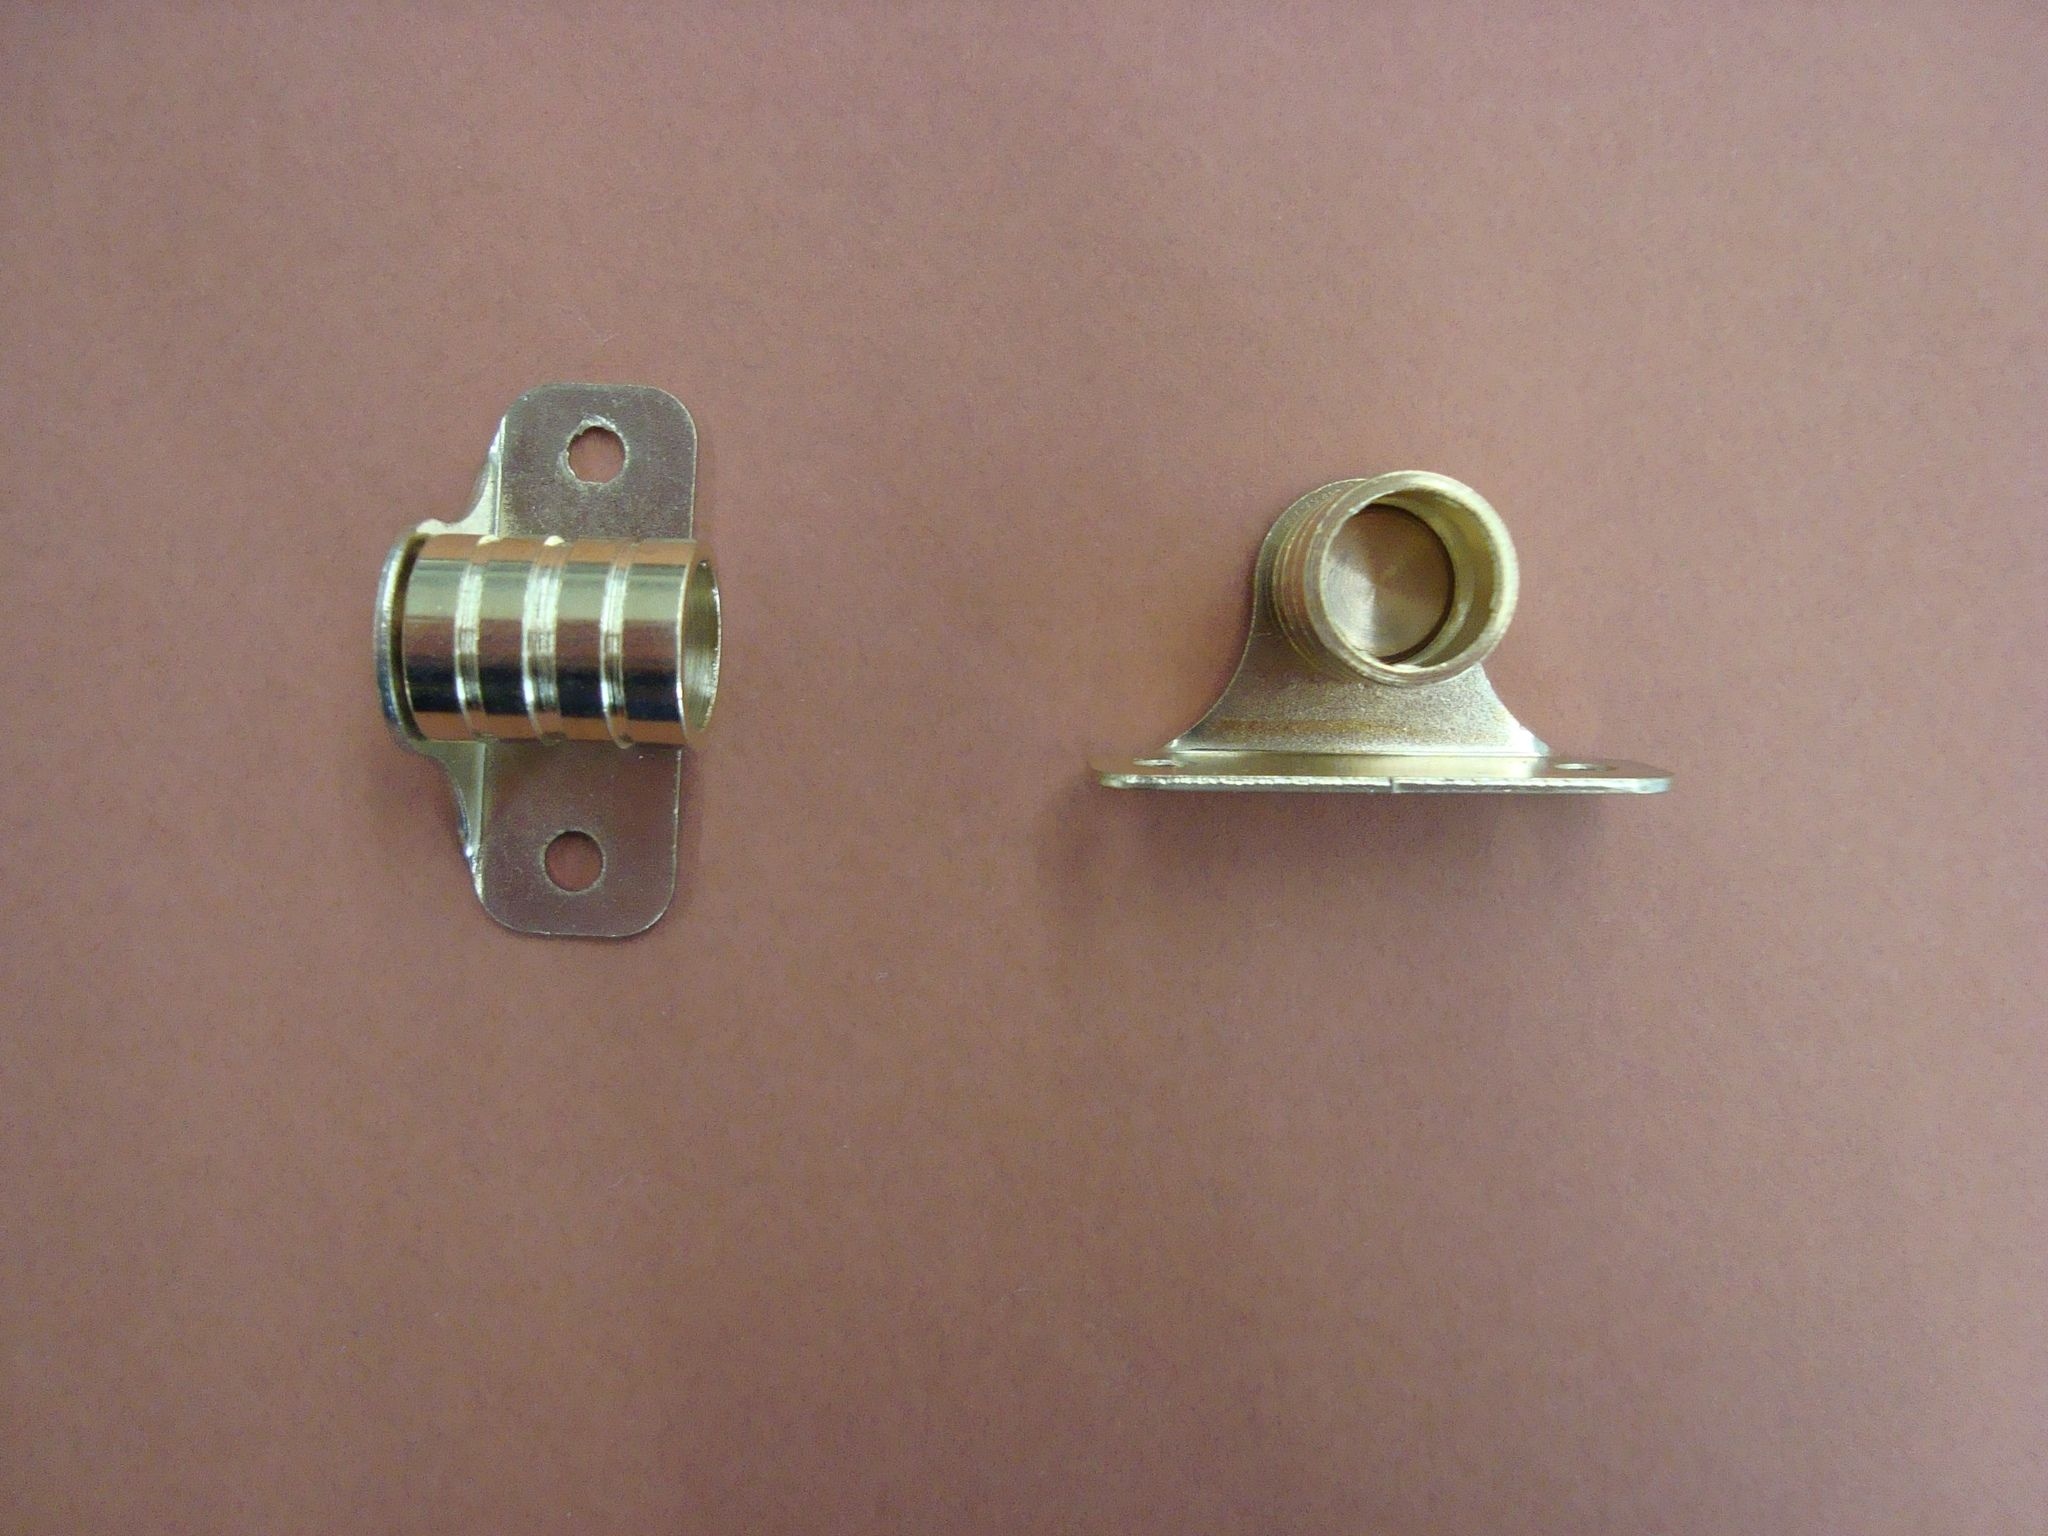 Inside Mount Barrel Brackets For Hanging Cabinet Curtains So